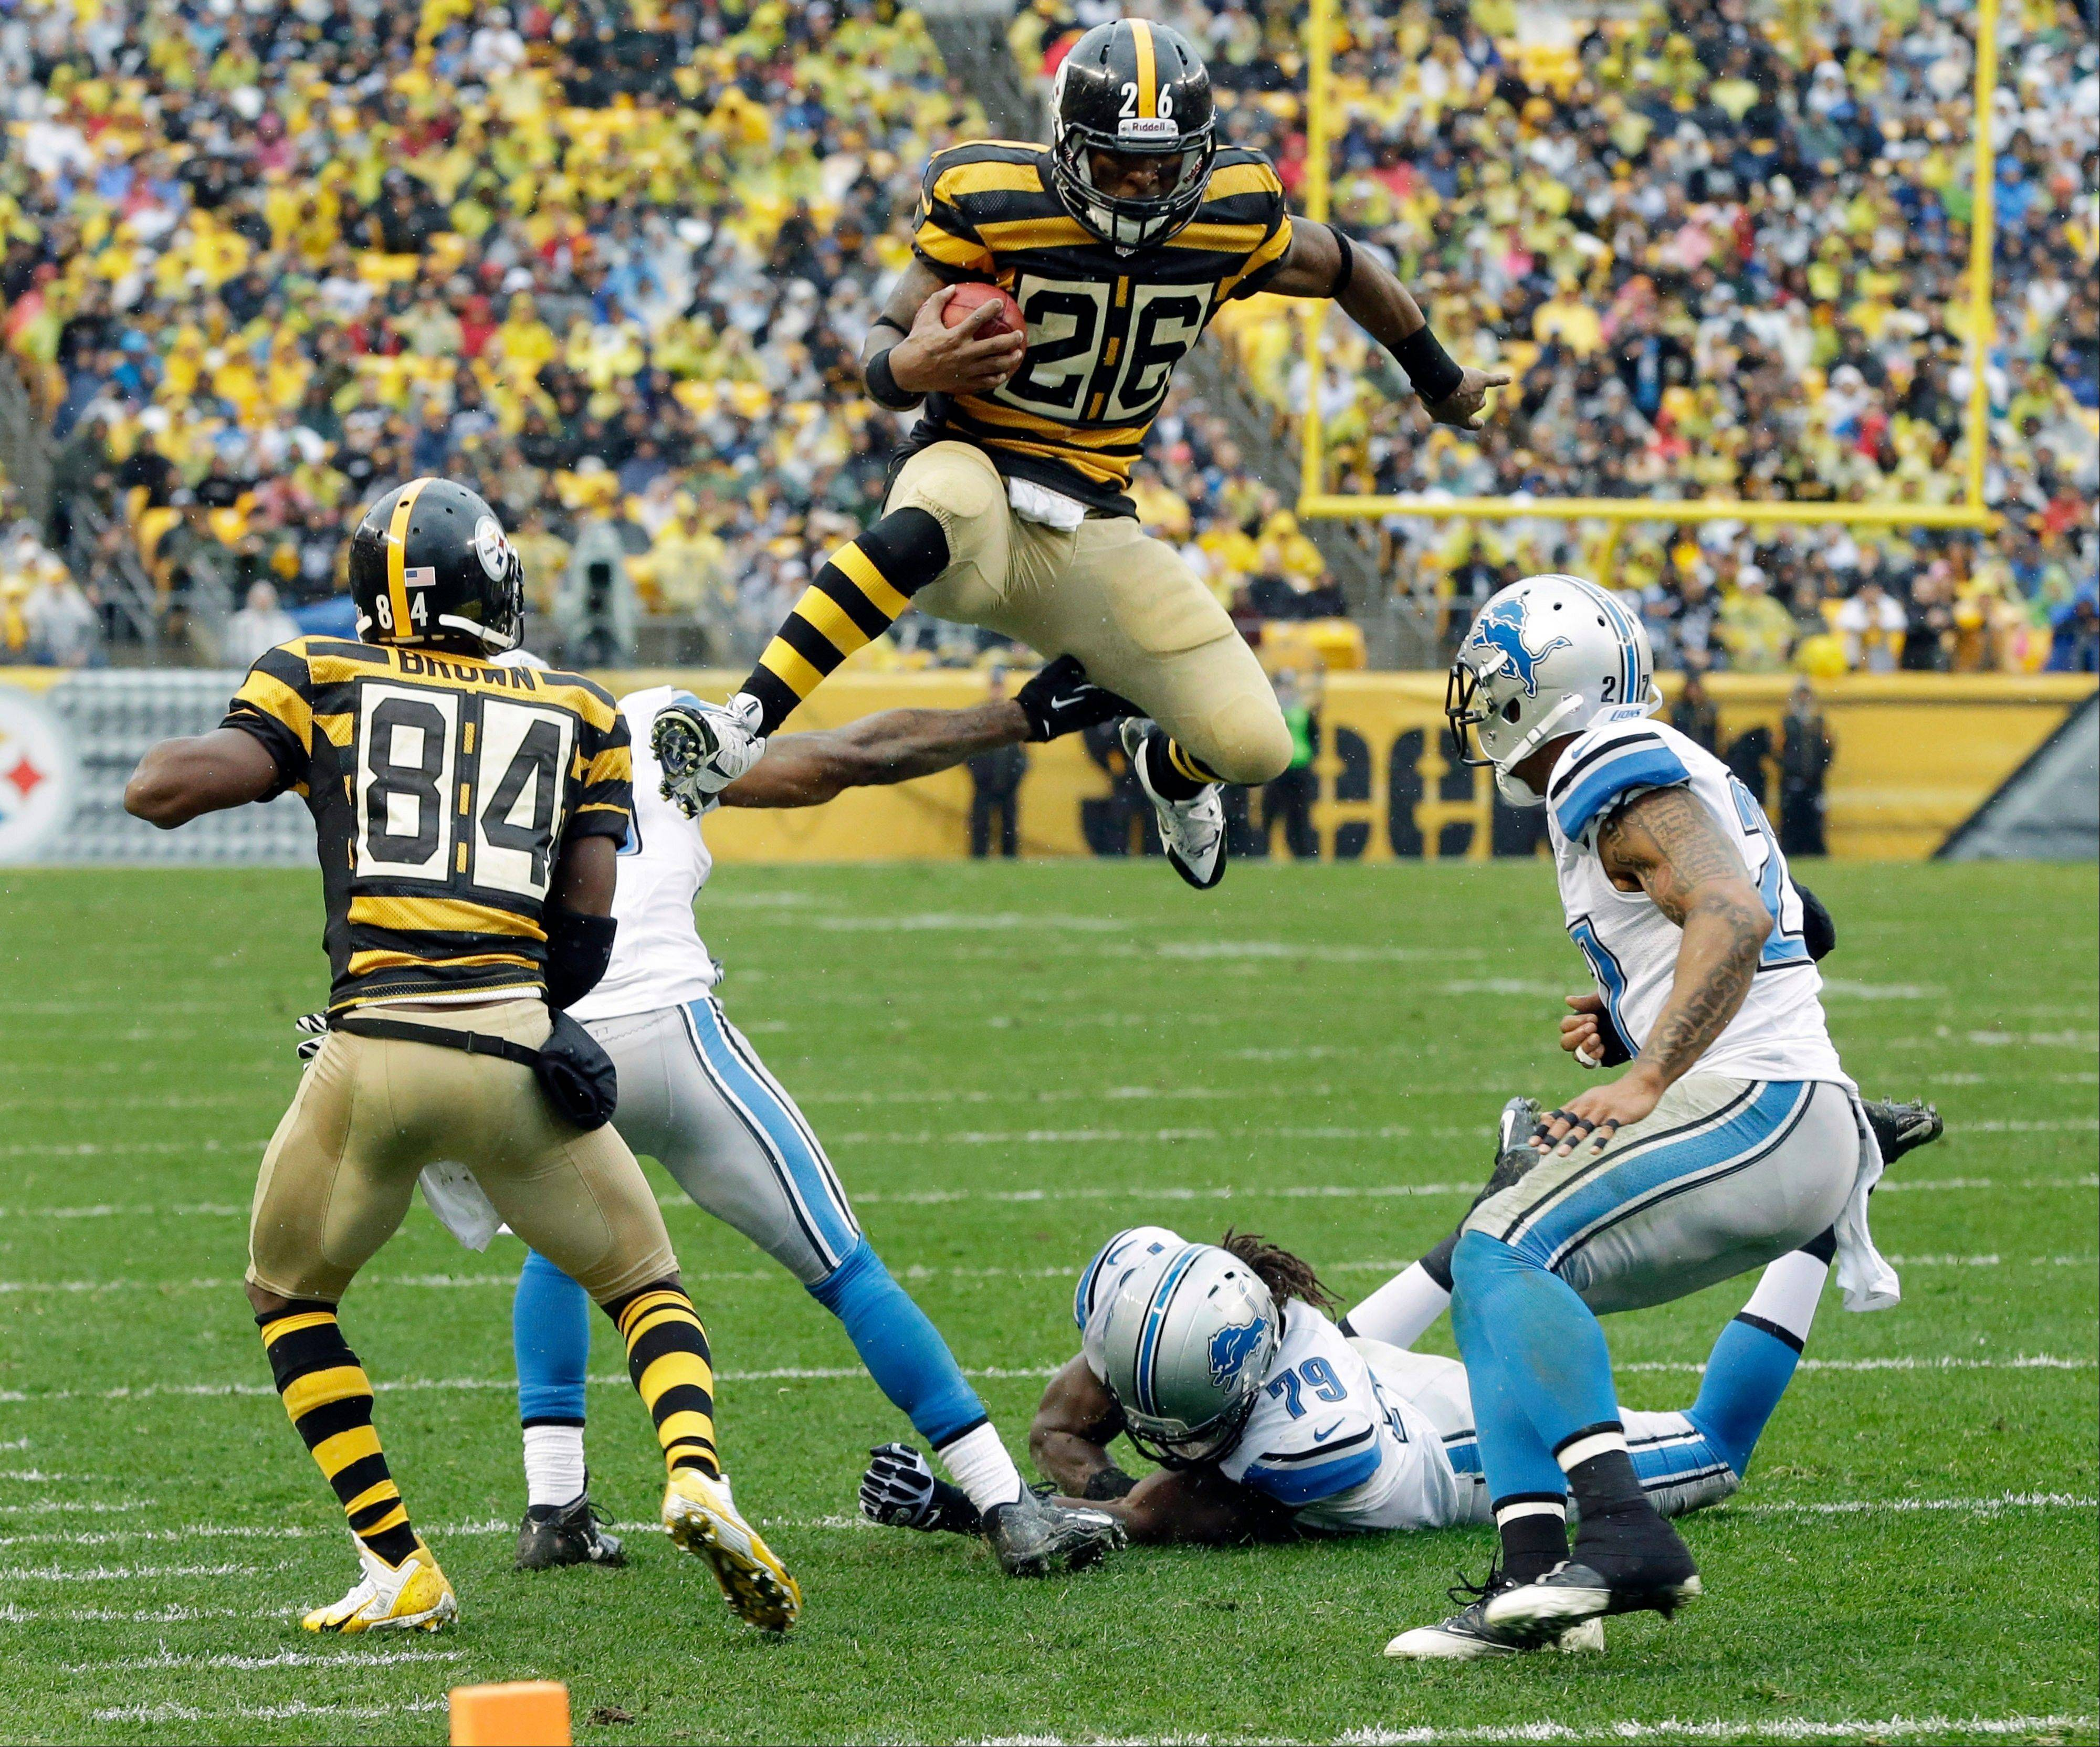 Pittsburgh Steelers running back Le�Veon Bell (26) leaps for more yardage as he tries to evade Detroit Lions strong safety Glover Quin (27) and the defense in the first half of an NFL football game in Pittsburgh, Sunday, Nov. 17, 2013.